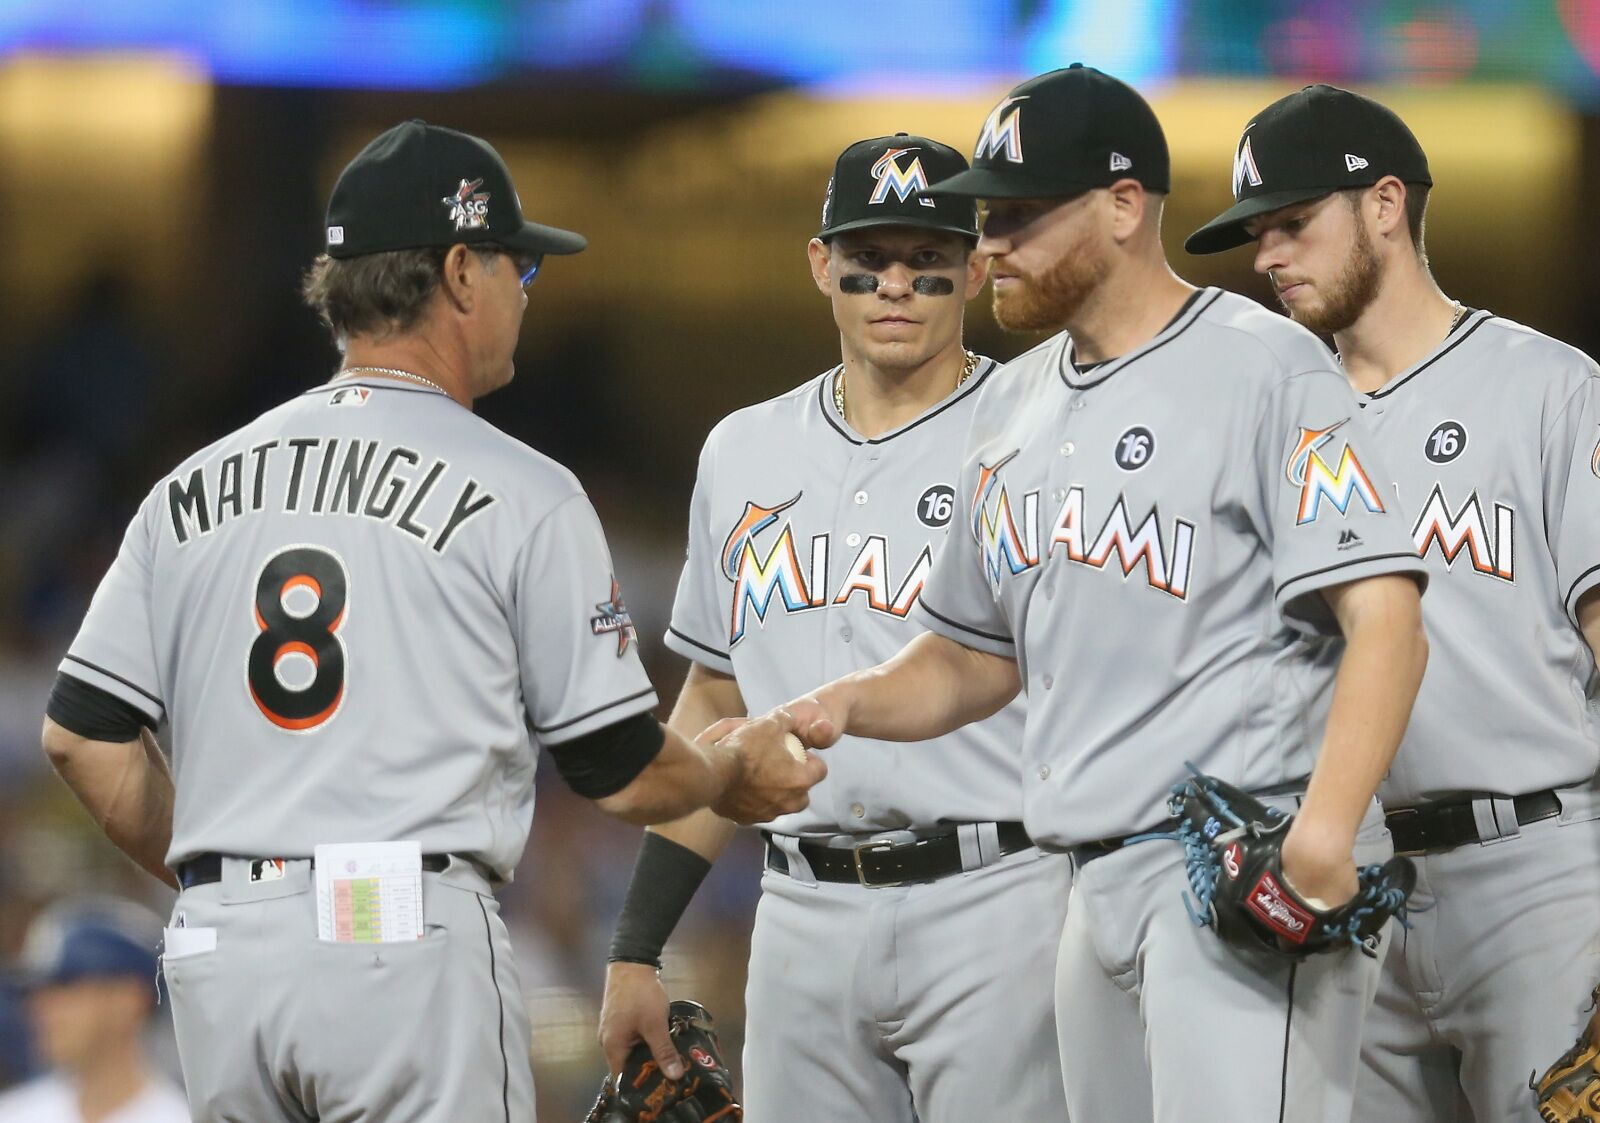 Will the Marlins replace Don Mattingly before the end of 2019?